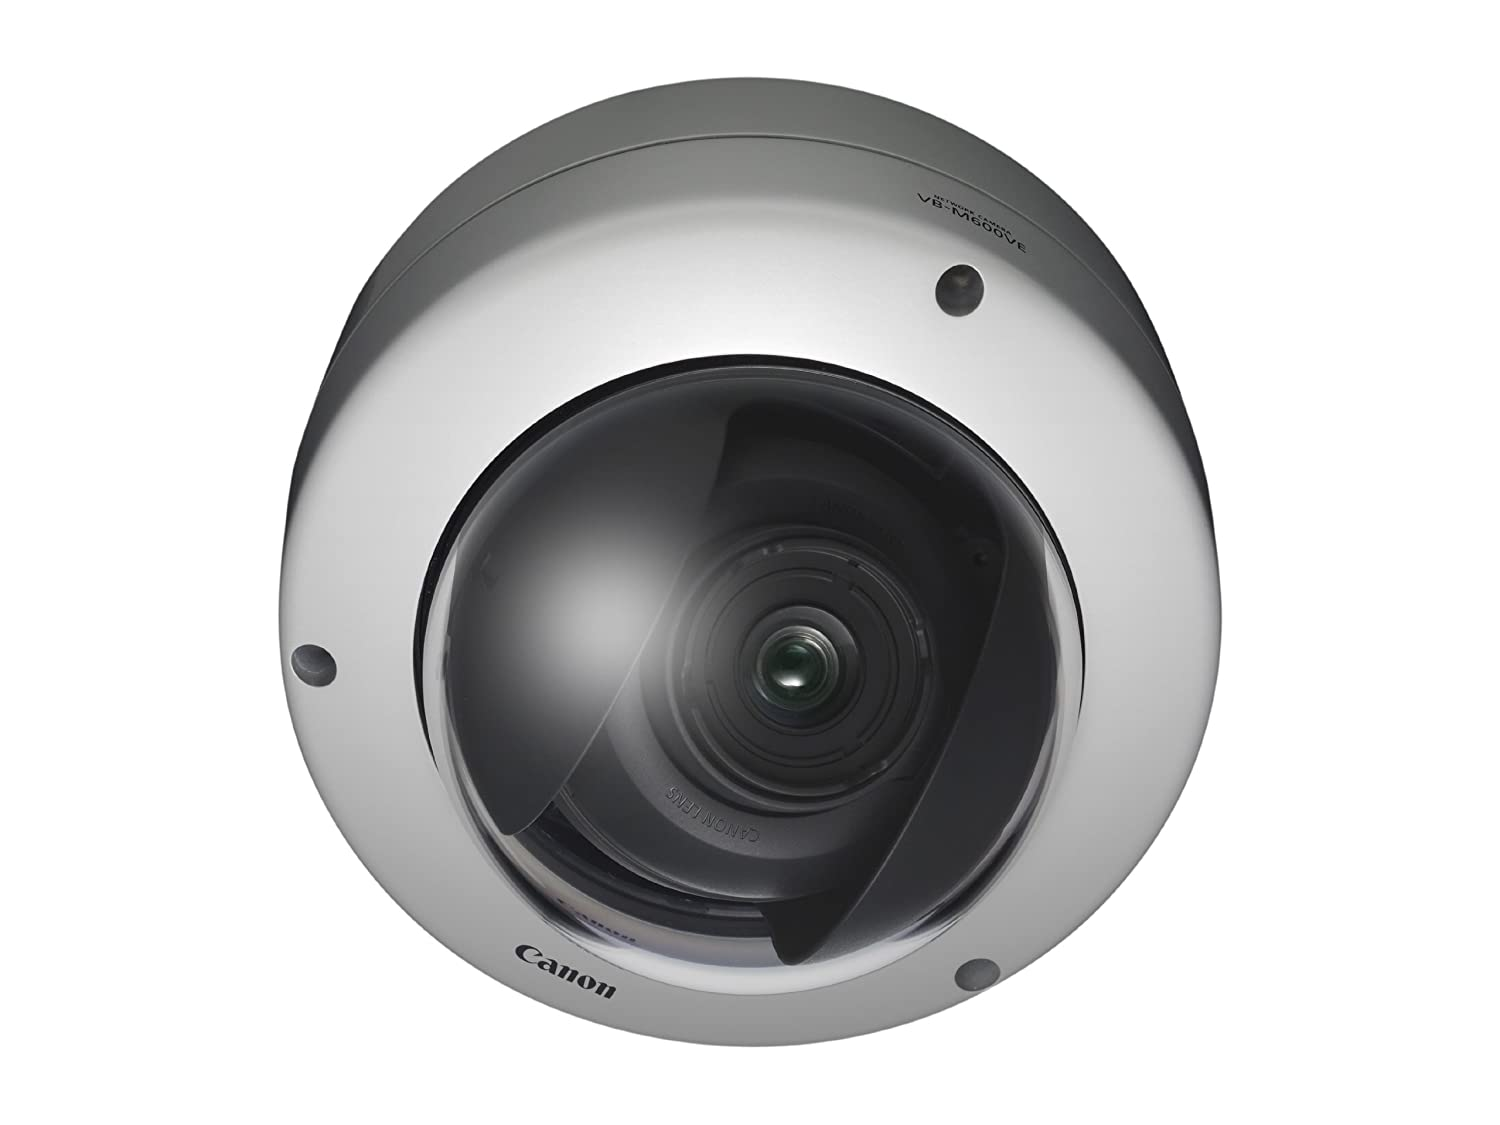 CANON VB-M600VE NETWORK CAMERA DRIVERS FOR WINDOWS MAC